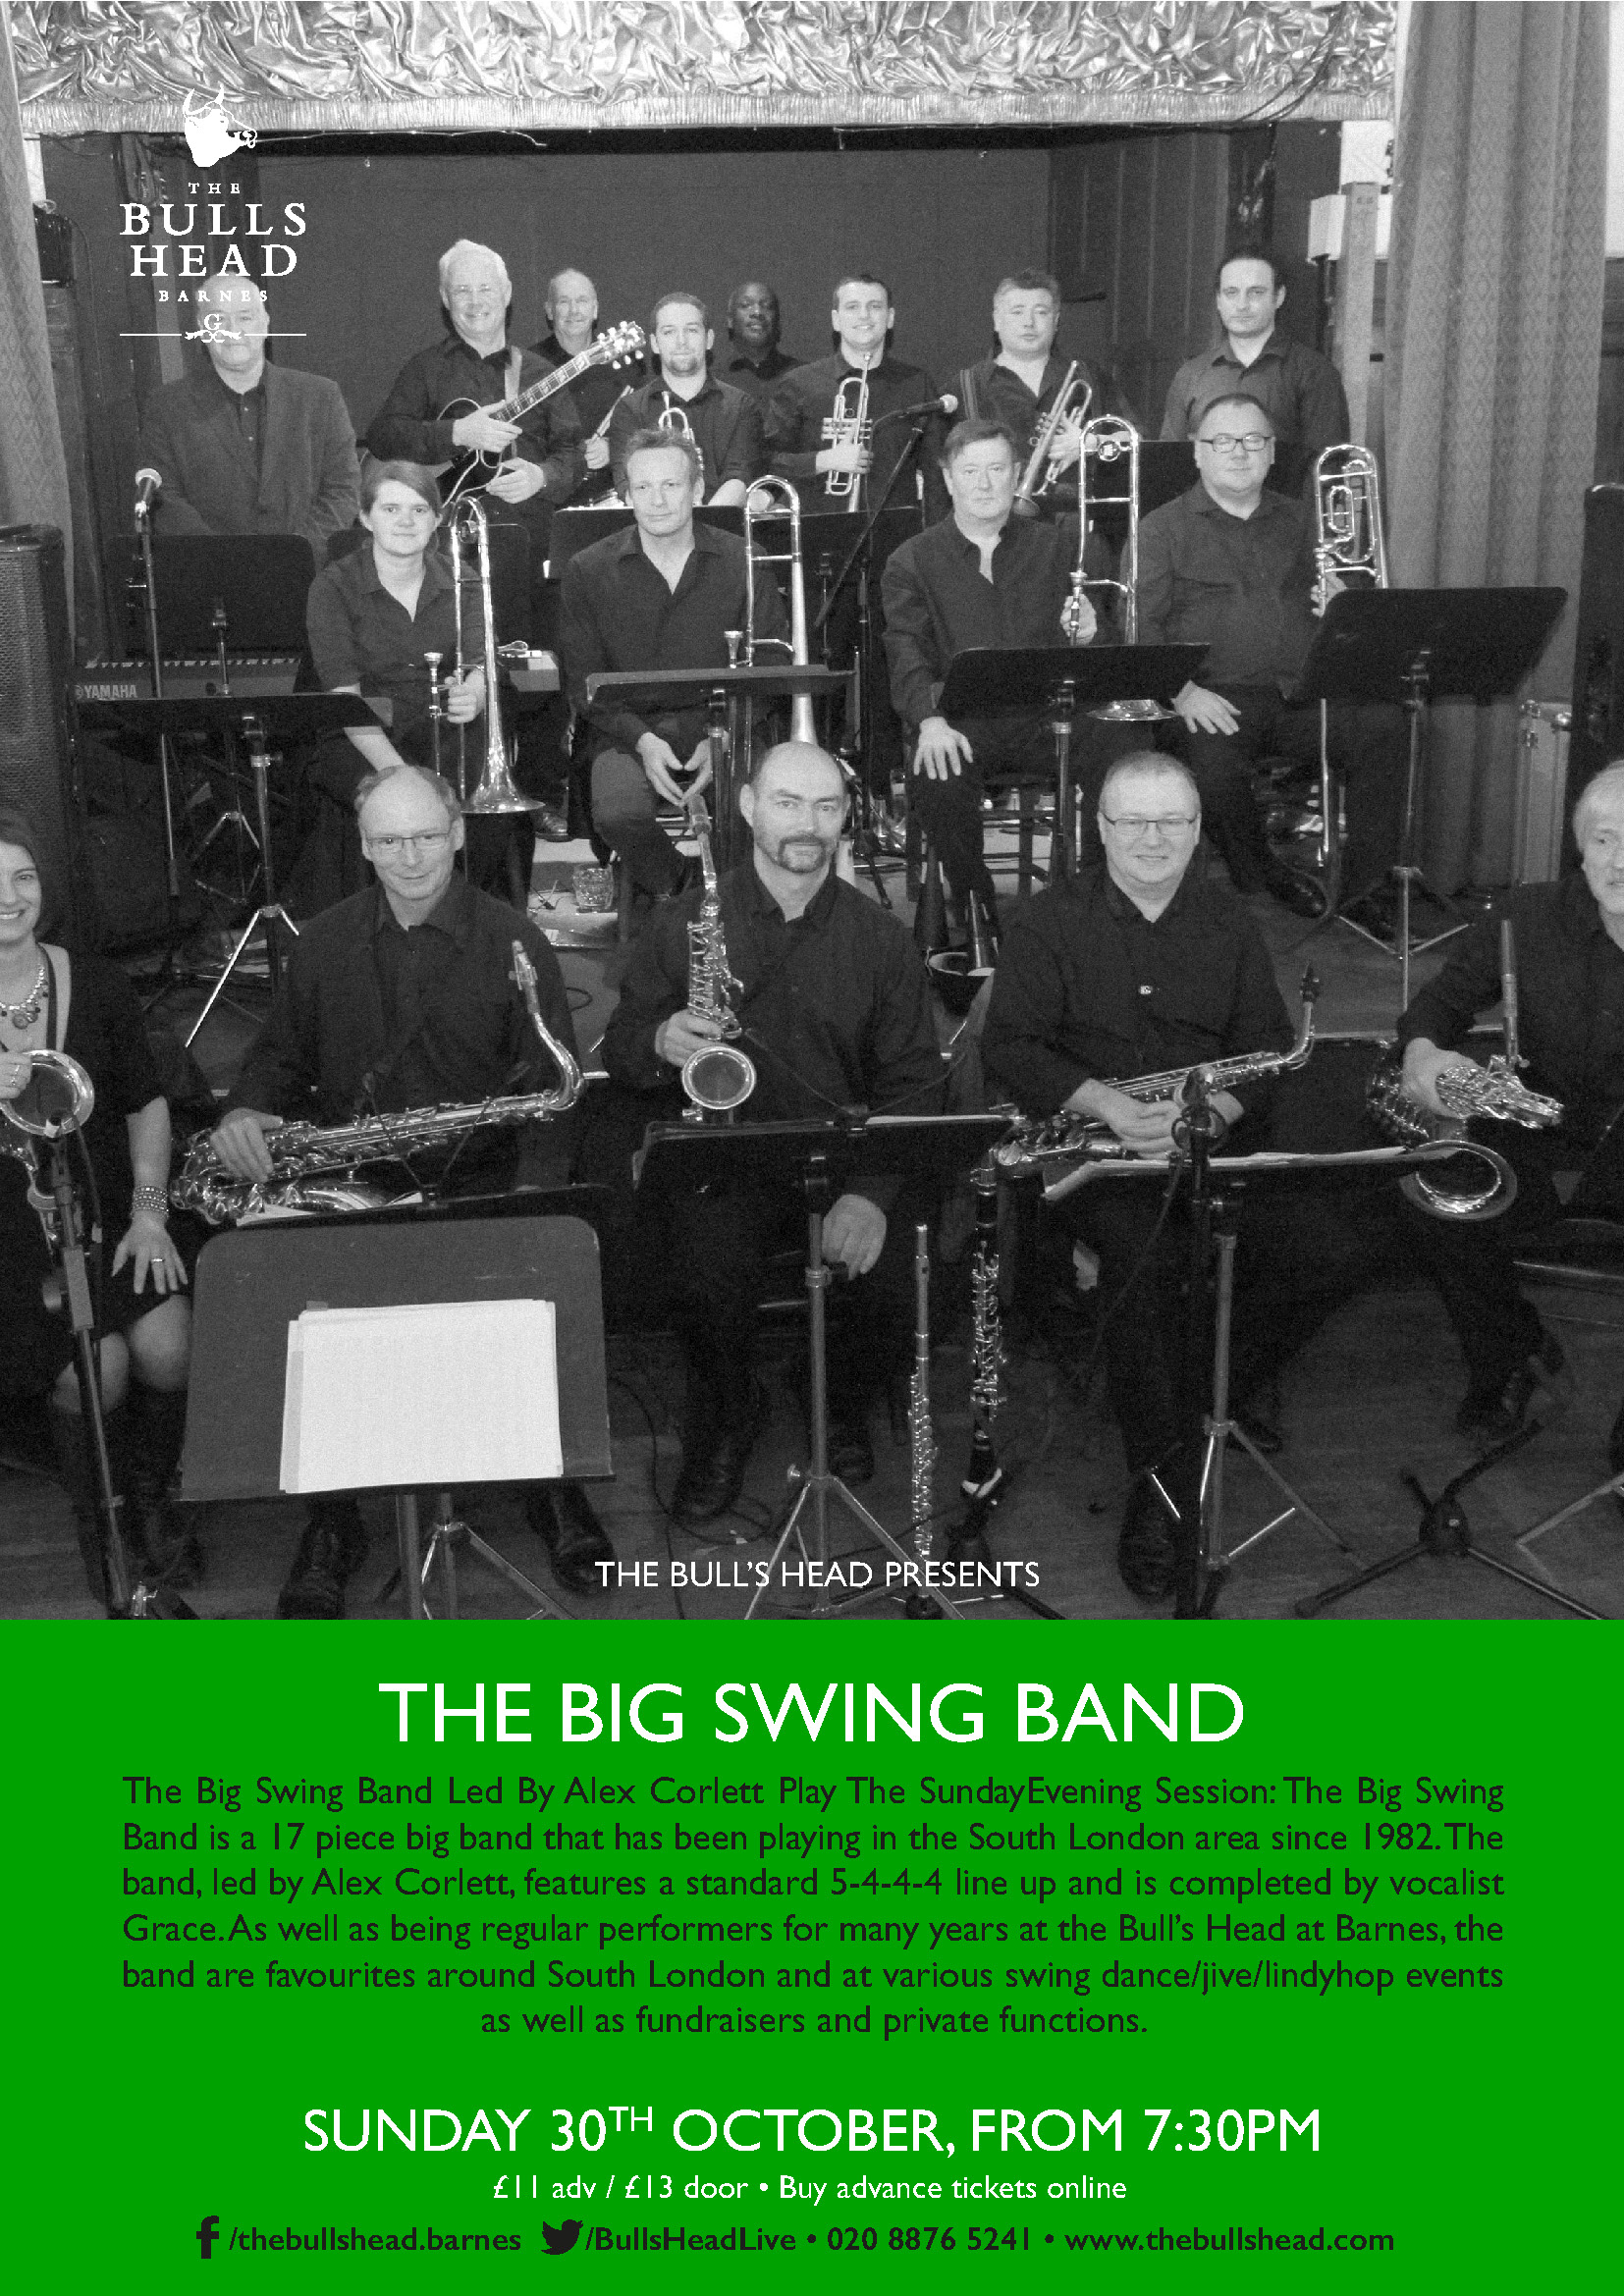 The Big Swing Band Led By Alex Corlett